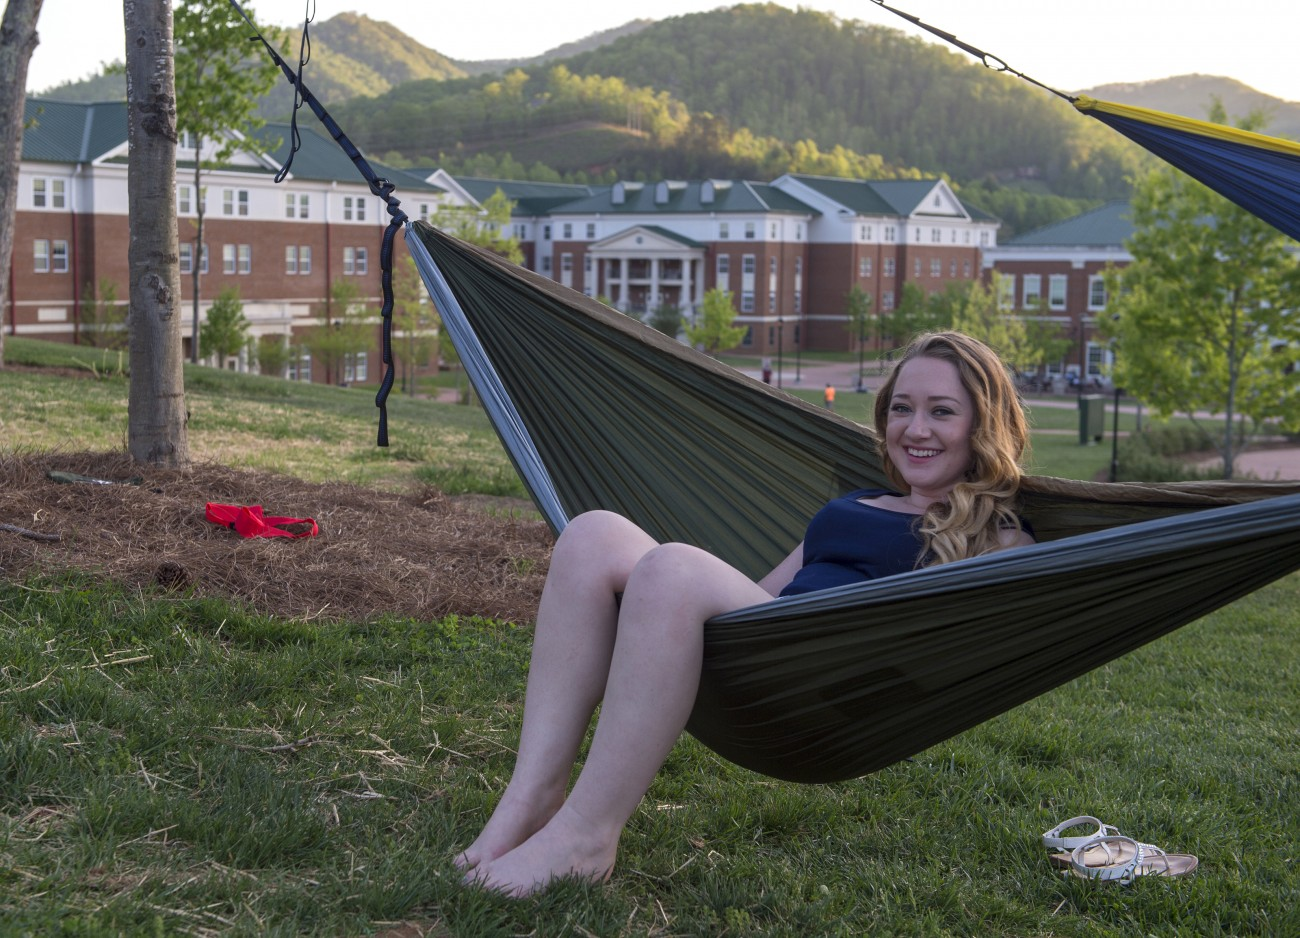 BRO hammock with campus in background